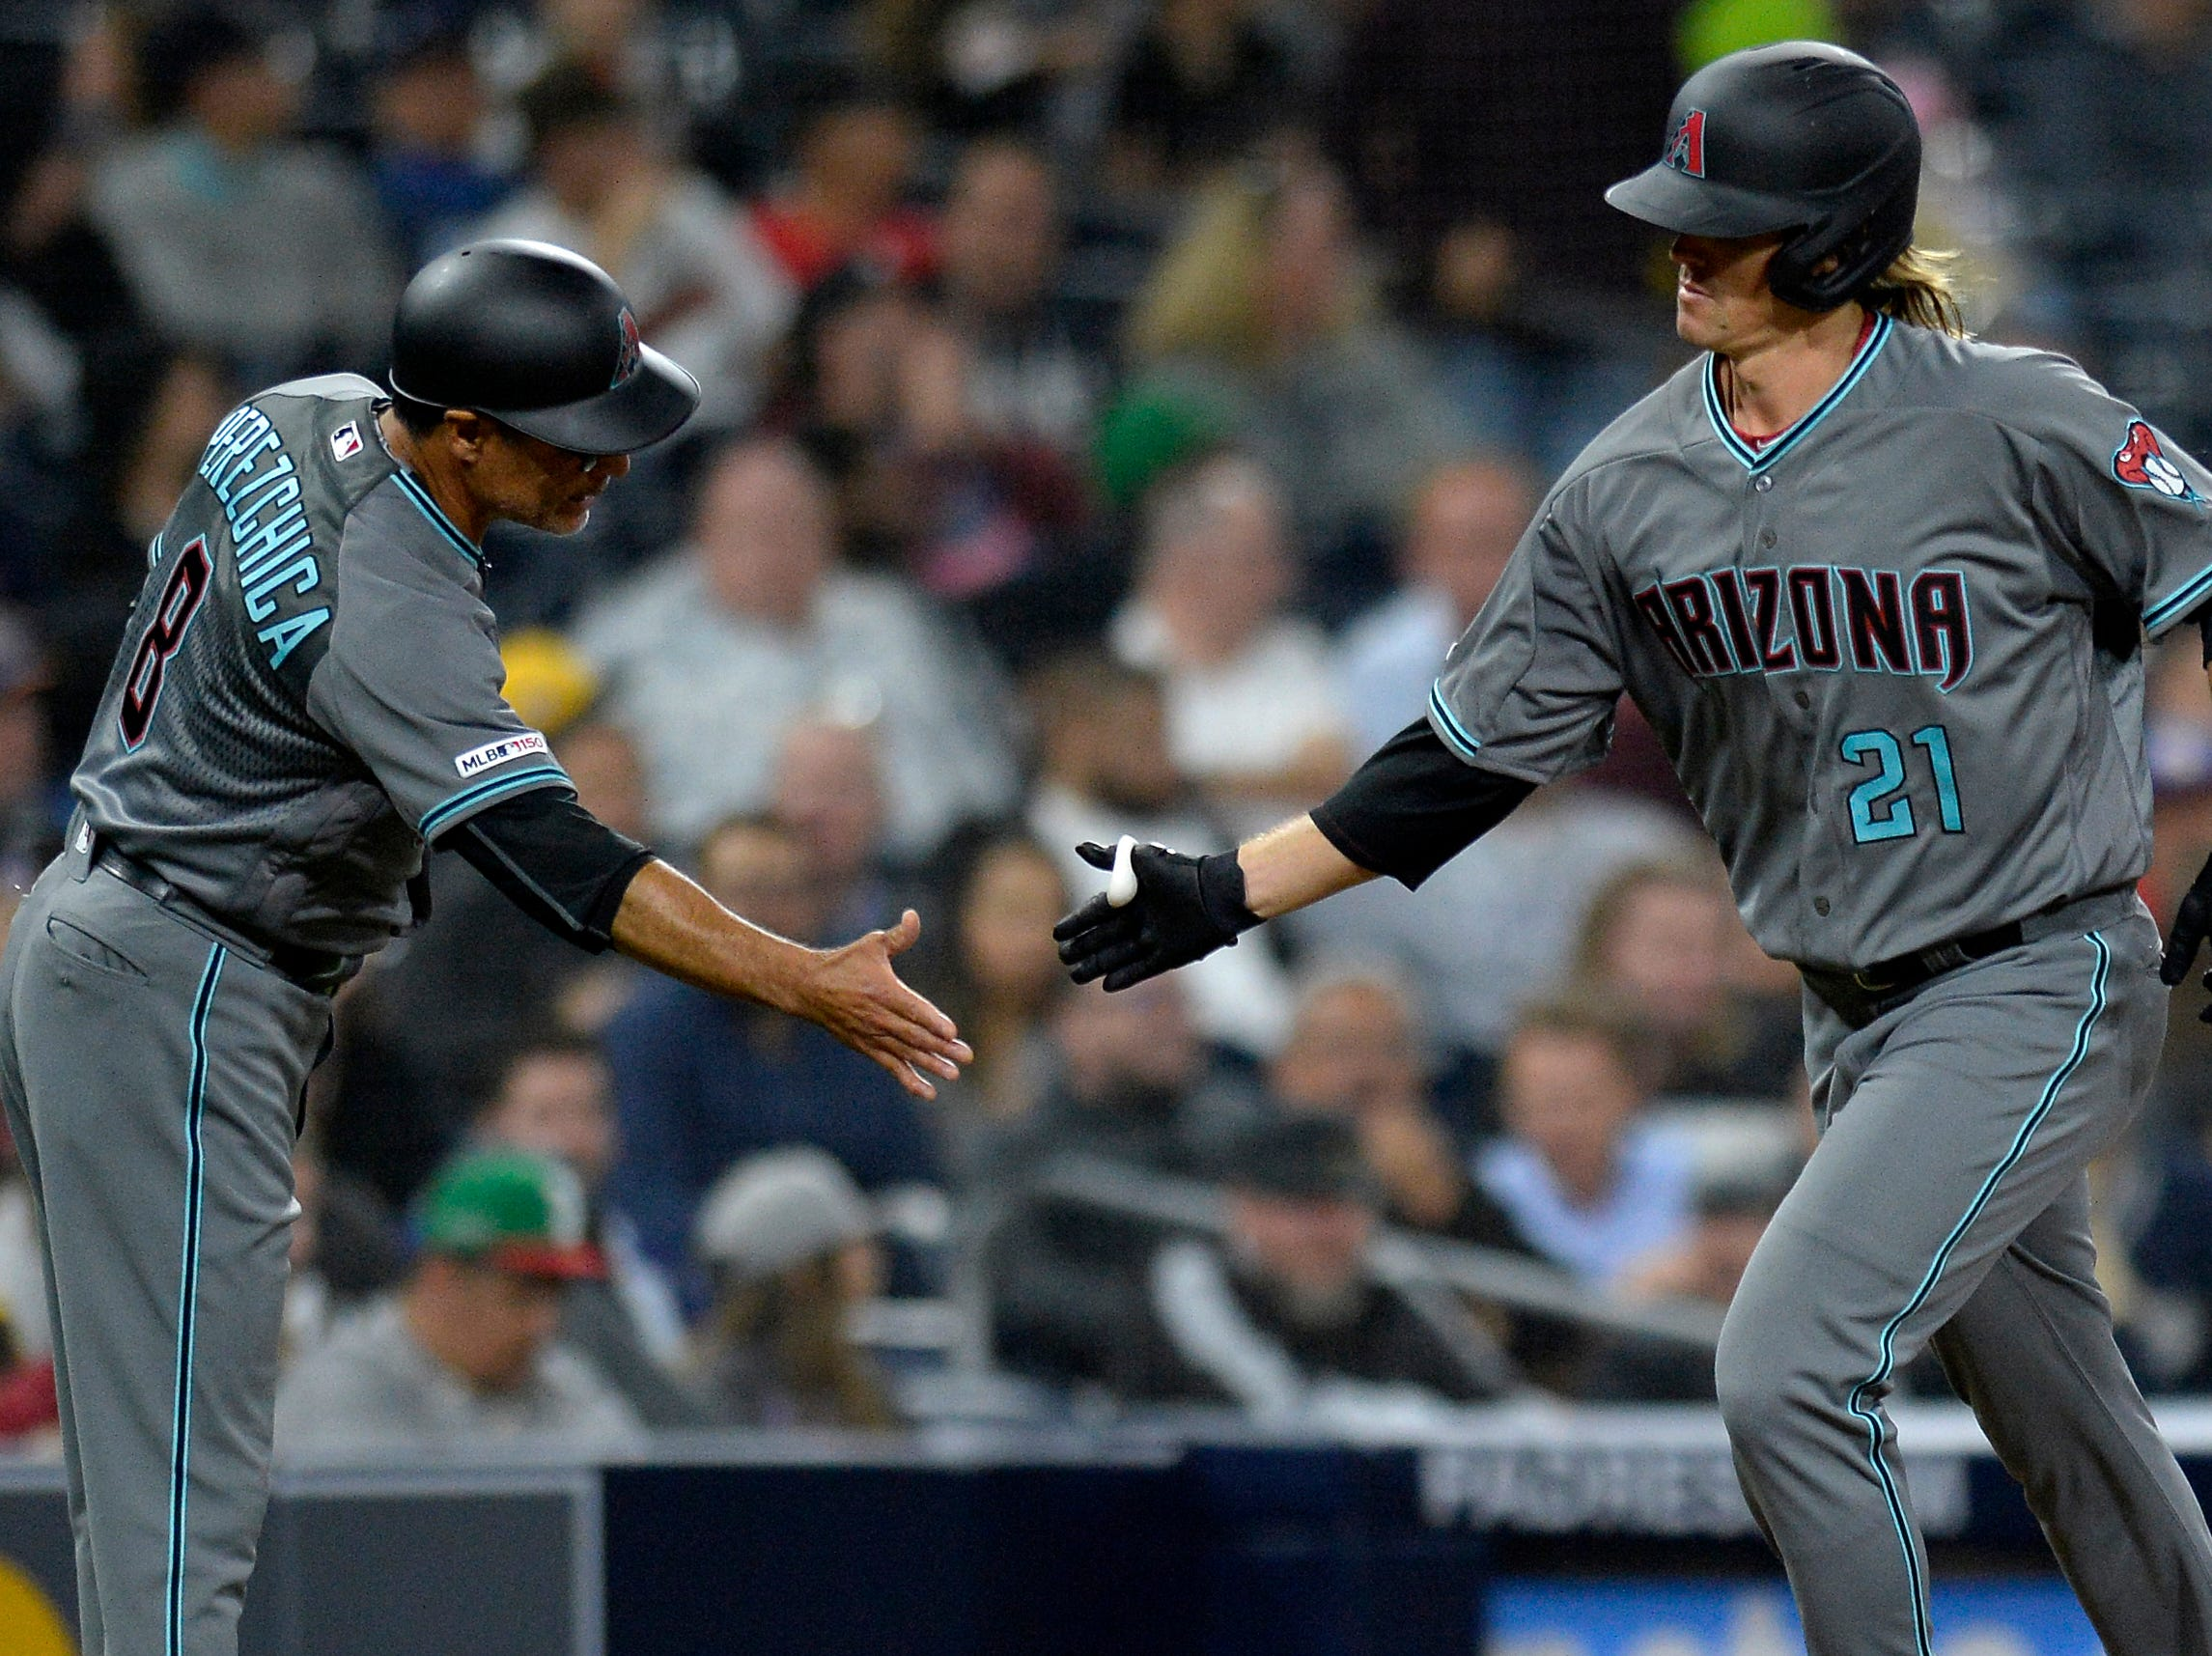 Apr 2, 2019; San Diego, CA, USA; Arizona Diamondbacks starting pitcher Zack Greinke (21) is congratulated by third base coach Tony Perezchica (8) after hitting his second home run of the game during the sixth inning against the San Diego Padres at Petco Park. Mandatory Credit: Jake Roth-USA TODAY Sports